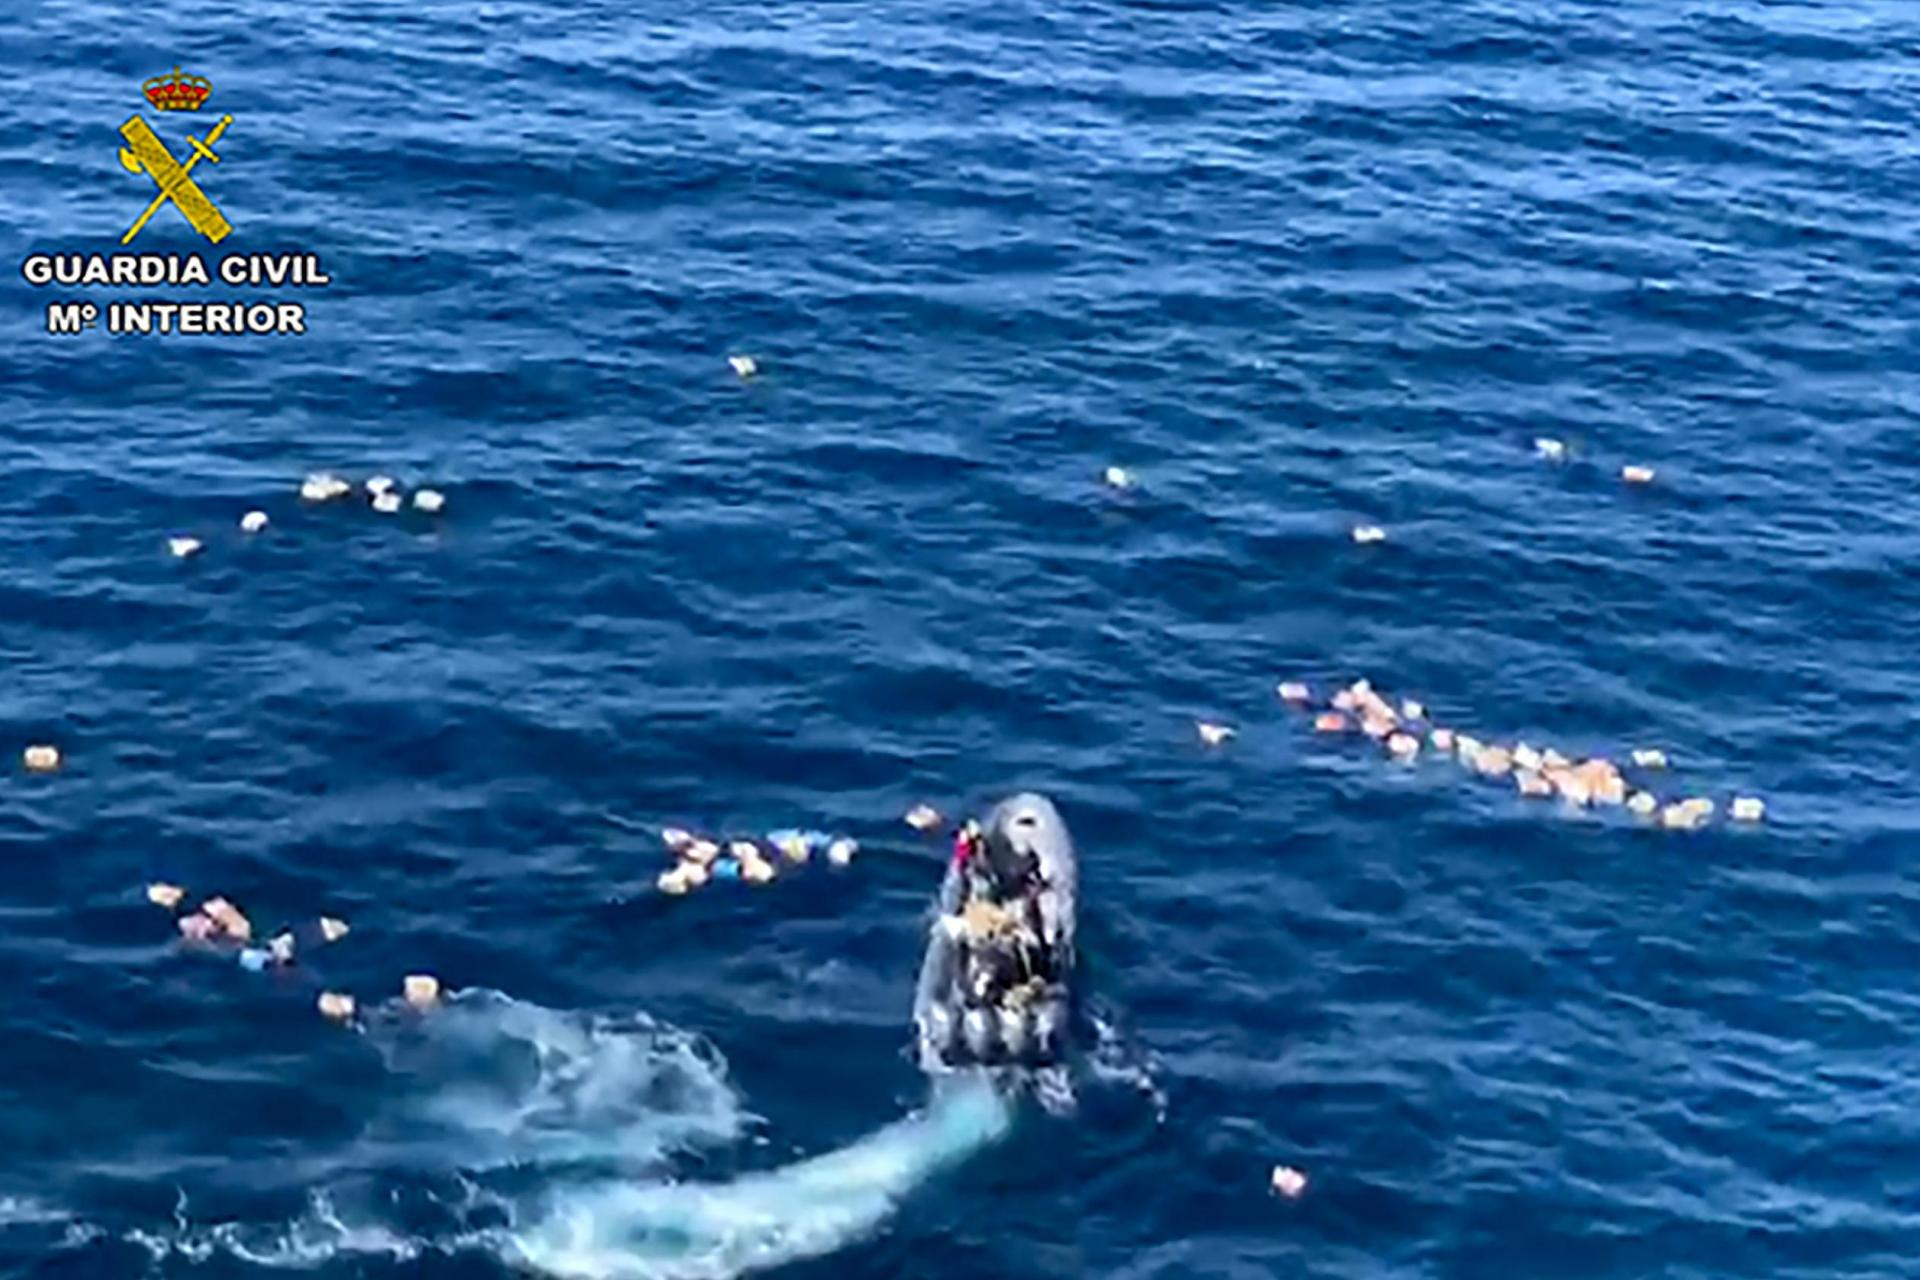 Spanish police saved from sea by smugglers they were chasing